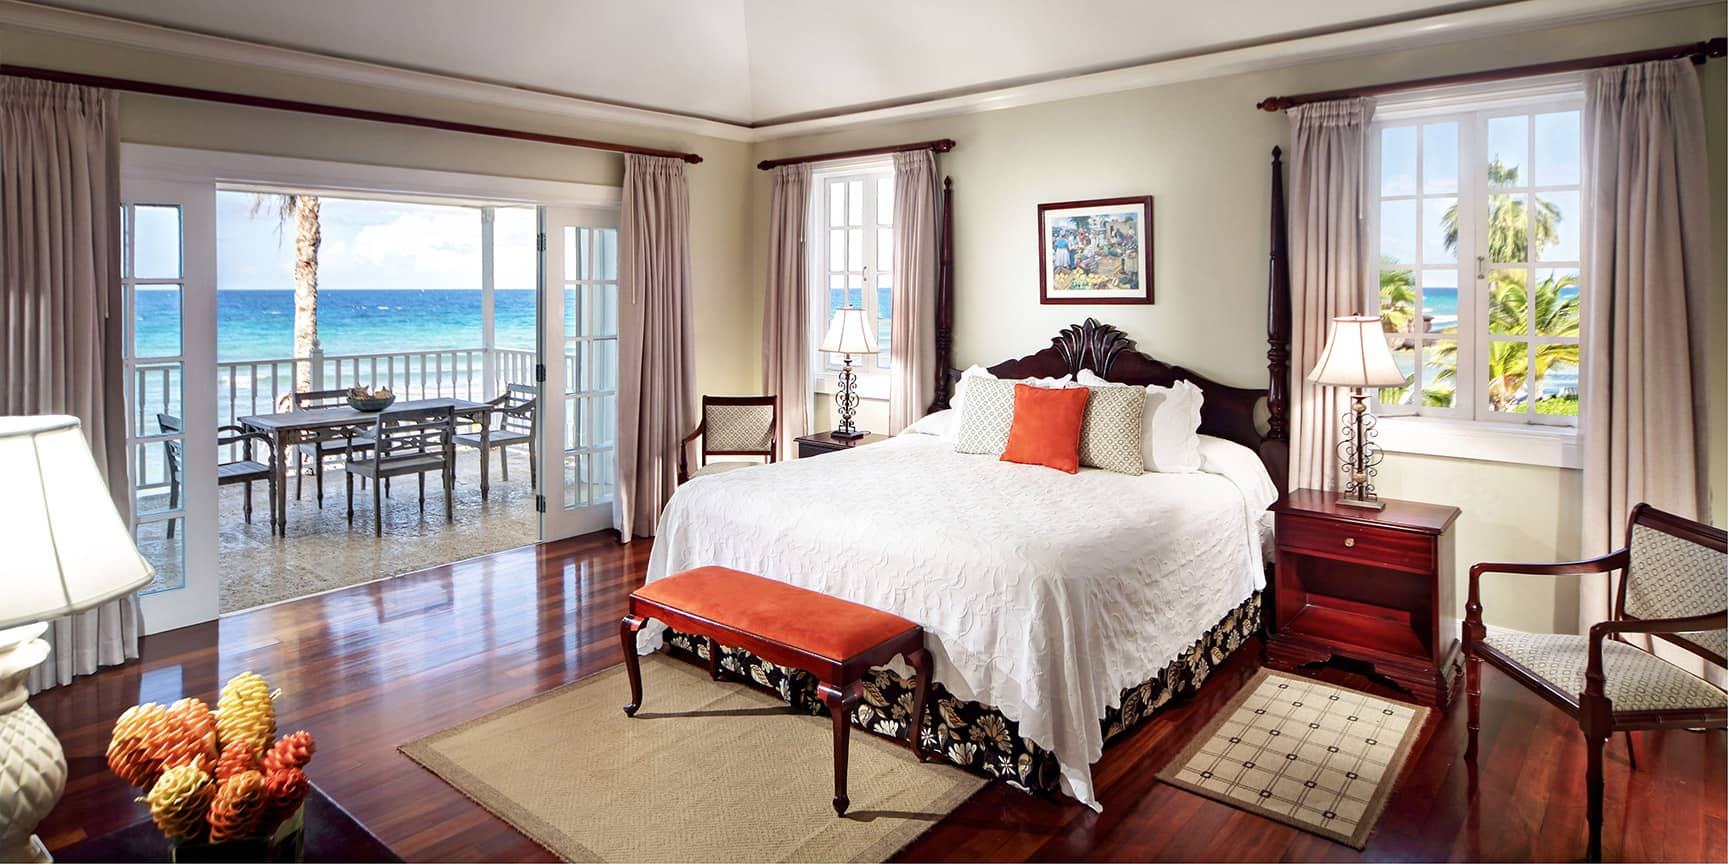 Accommodation Suite Imperial Rm 79a